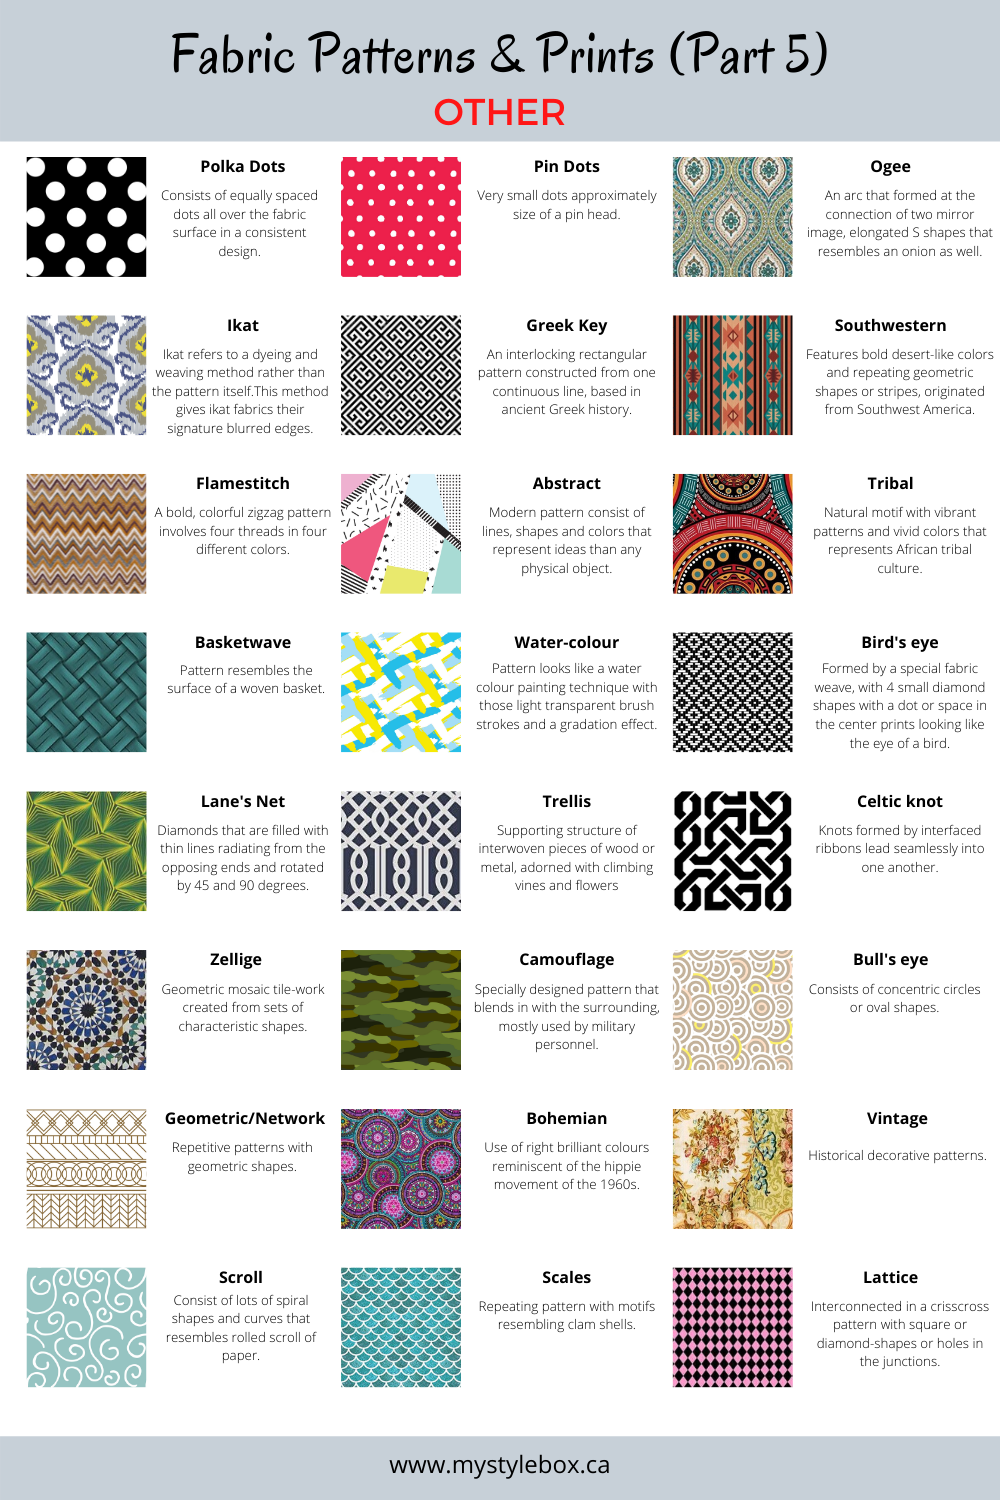 OTHER PATTERNS&PRINTS